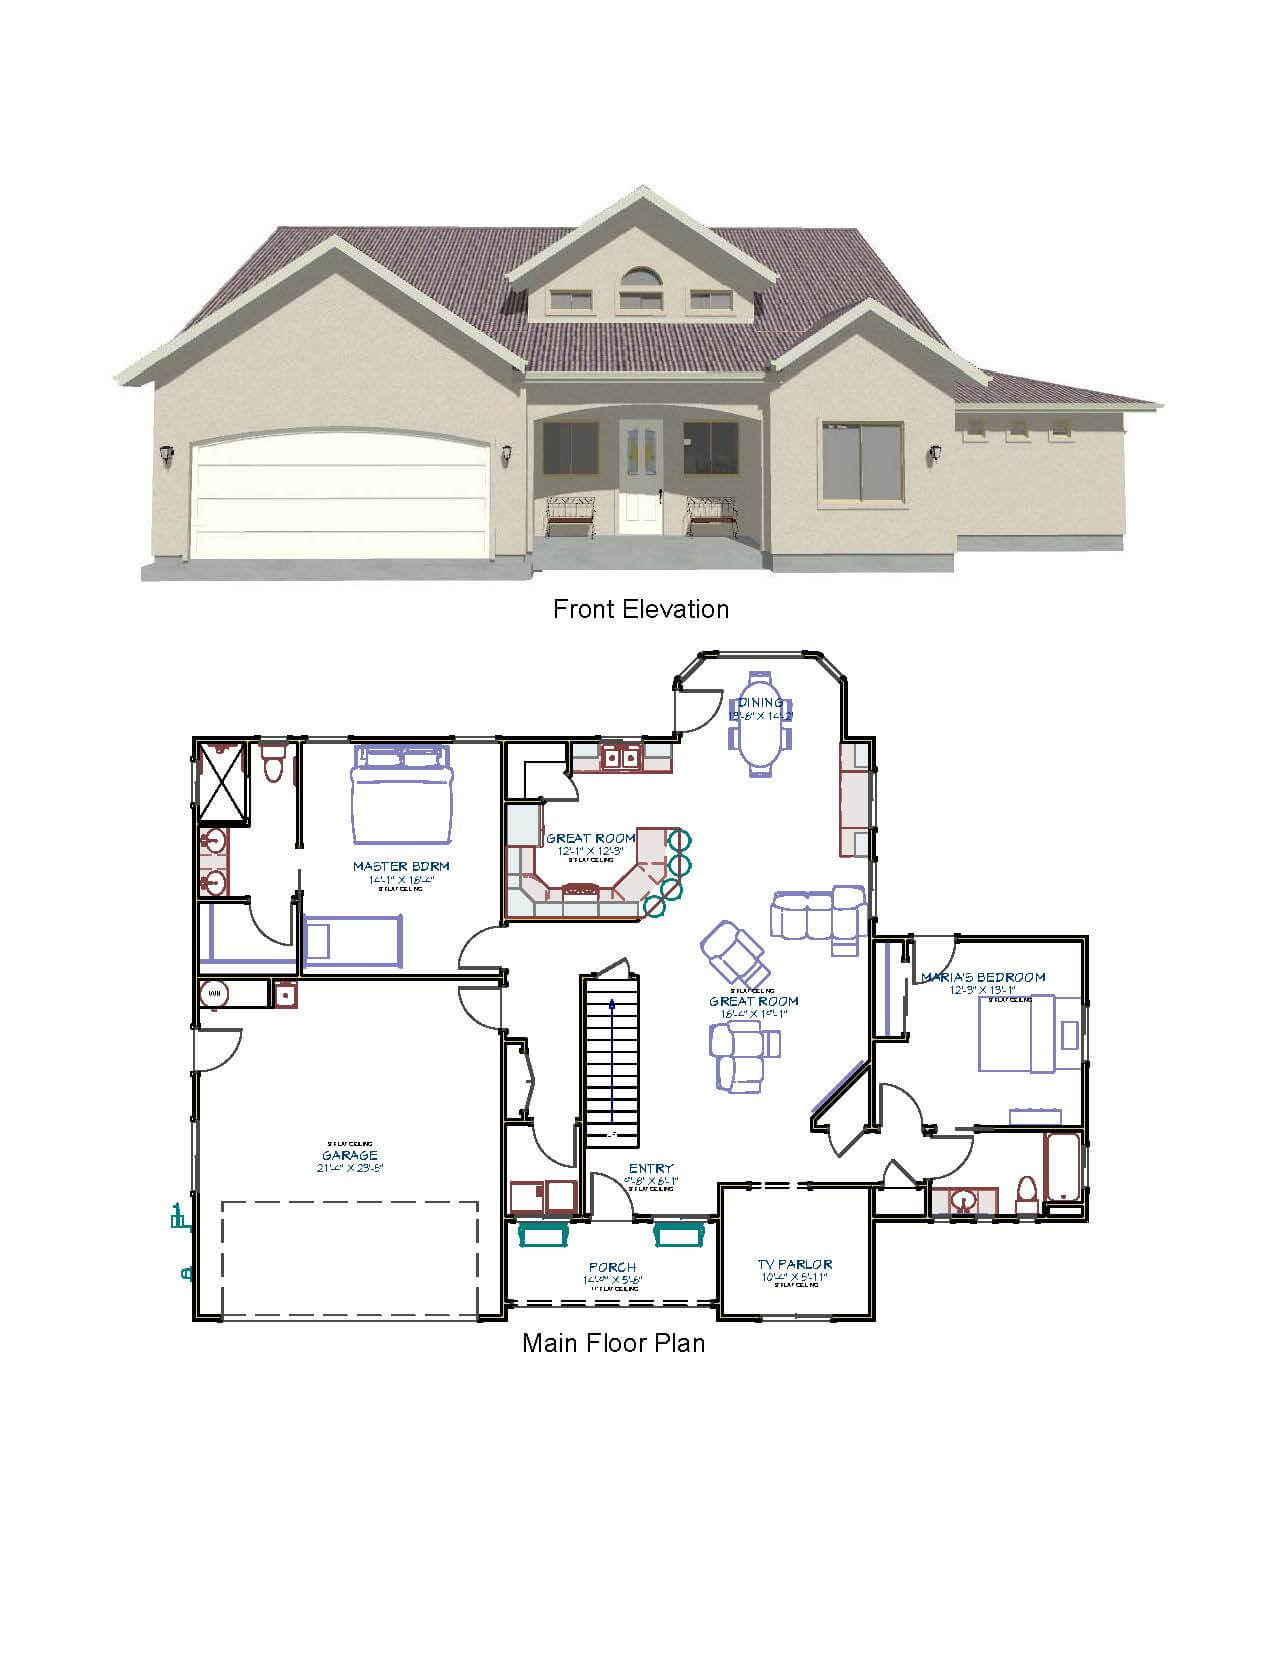 How much does it cost to draw a house plan in south africa for How much does a 2 story house cost